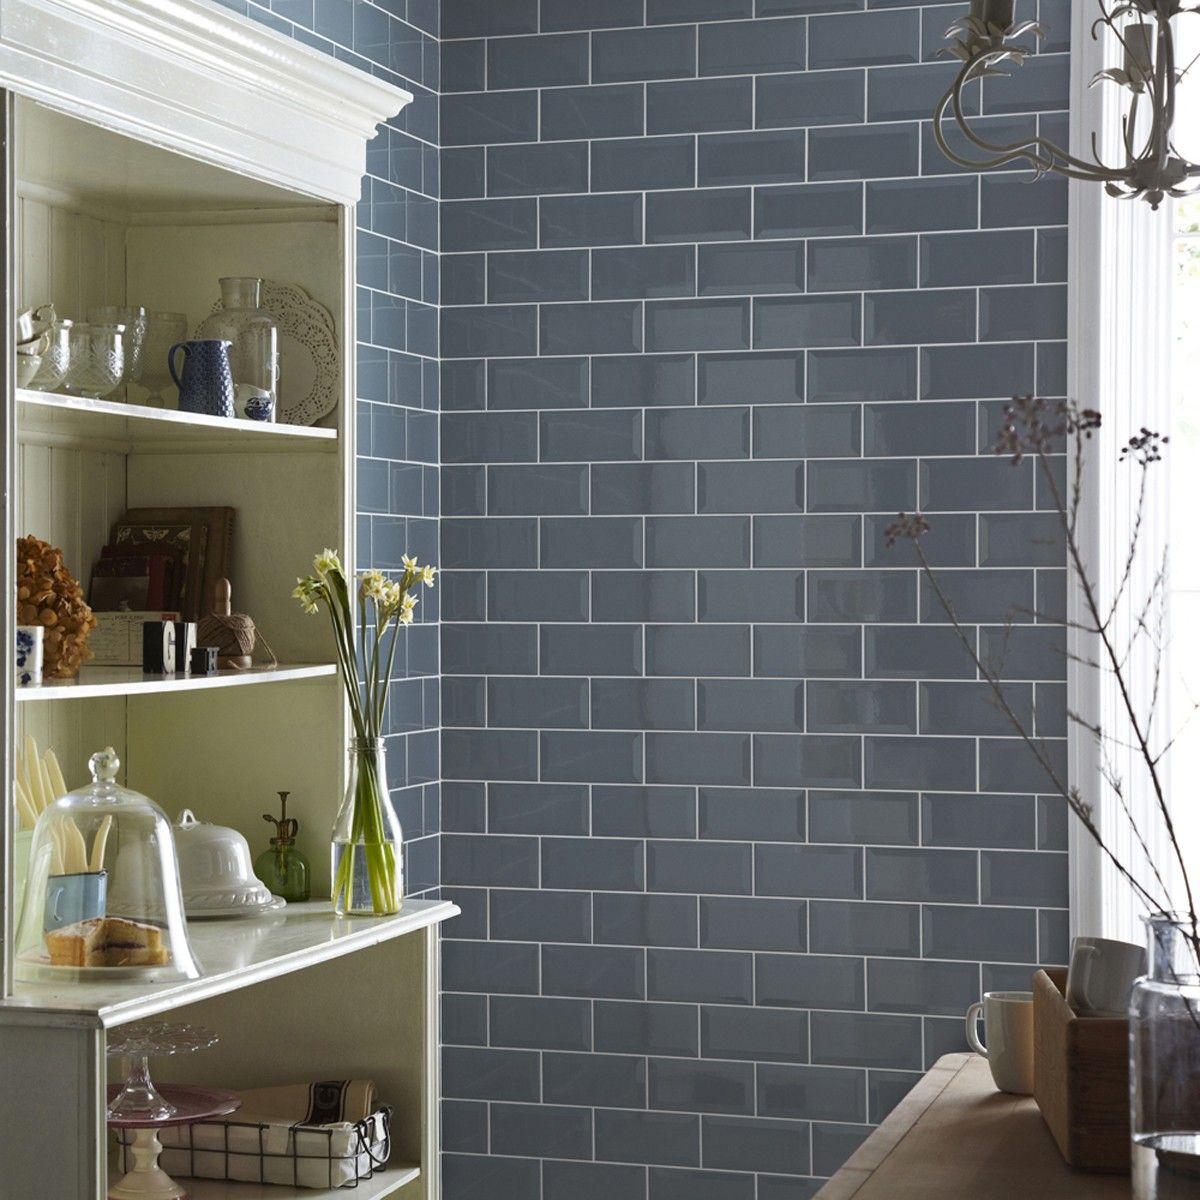 20x10 new biselado mineral mist kitchen wall tiles on wall tile id=92949